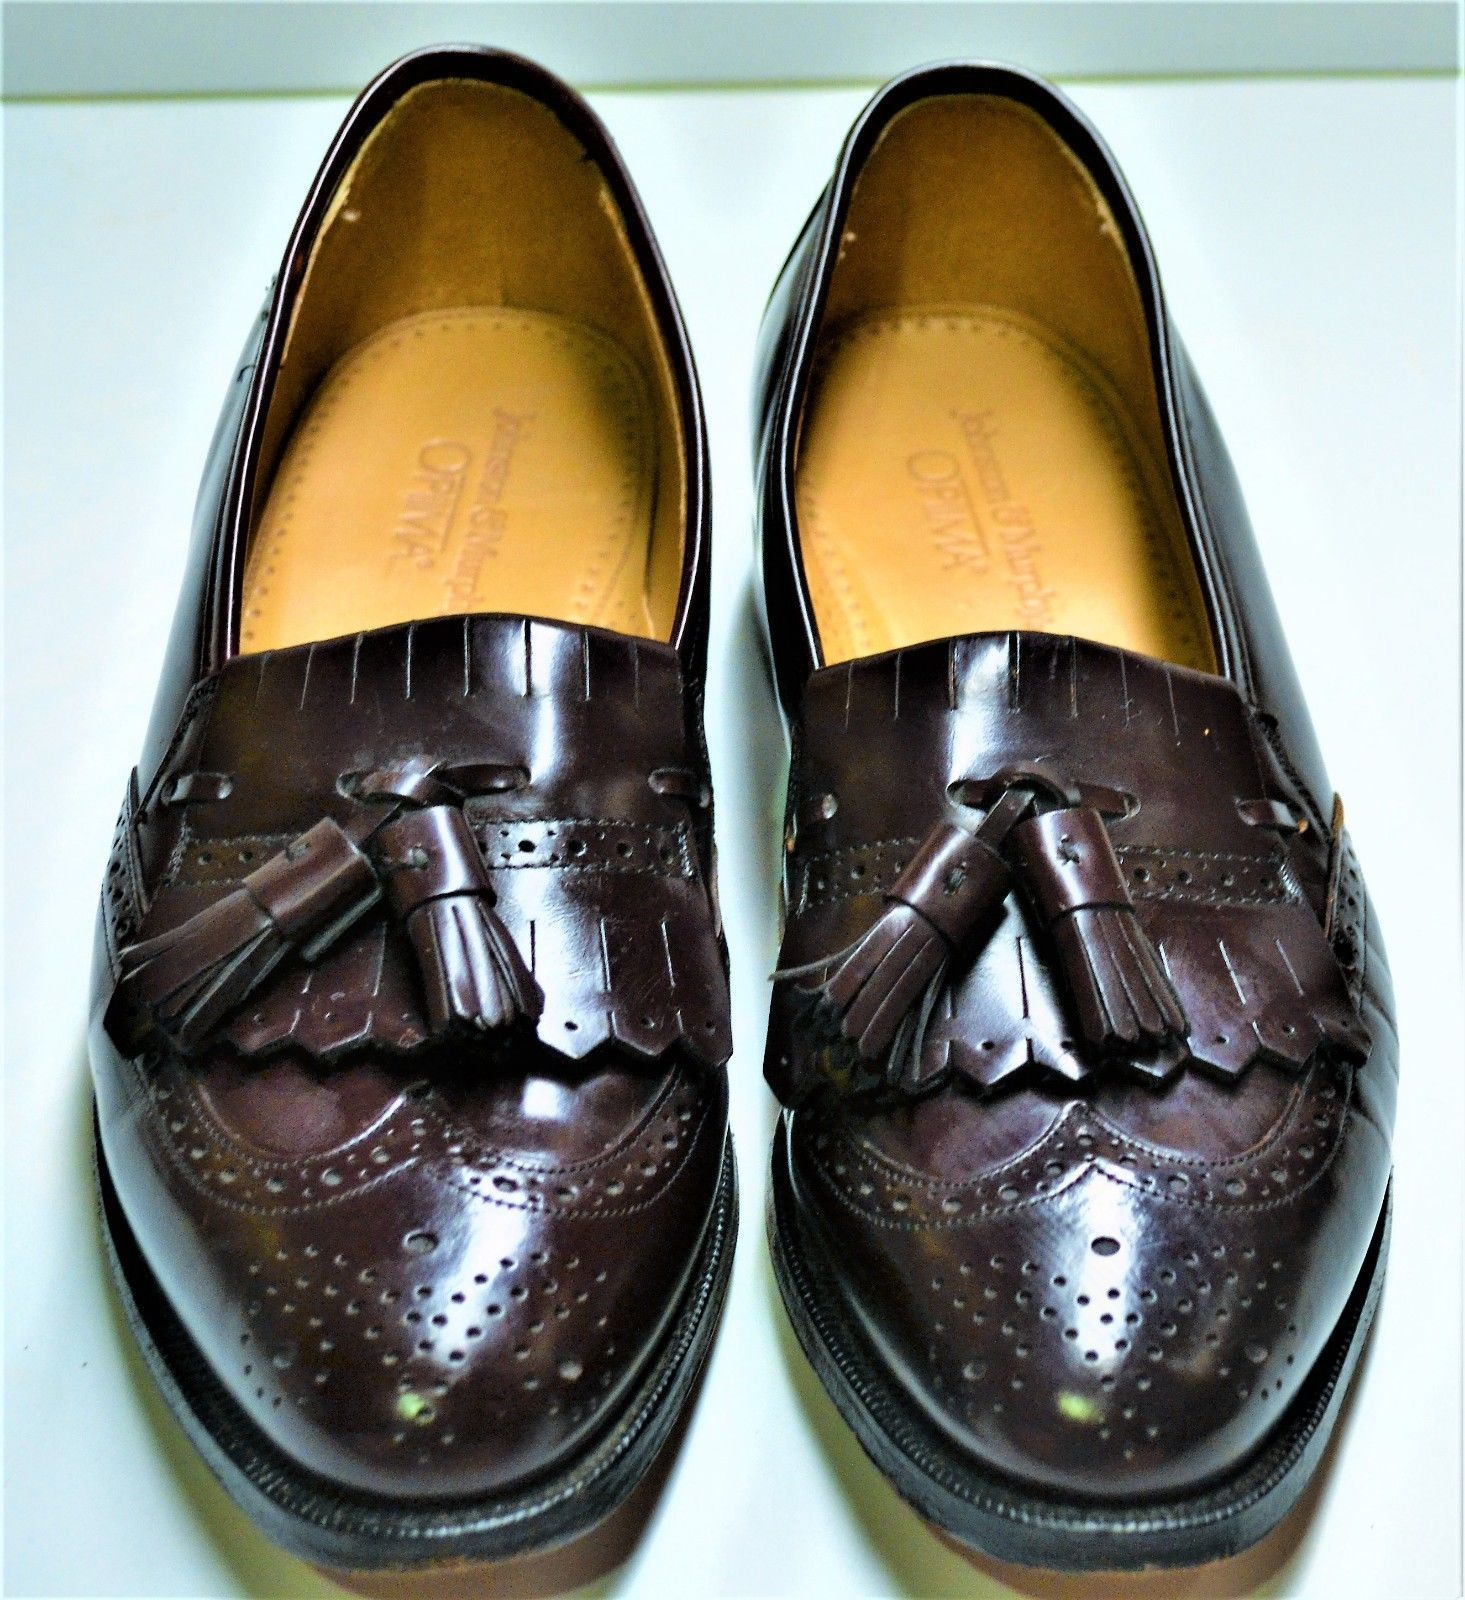 789e05bc2df S l1600. S l1600. Previous. Johnston Murphy Mens Leather Wingtip Tassel Loafers  Dress Shoes ...